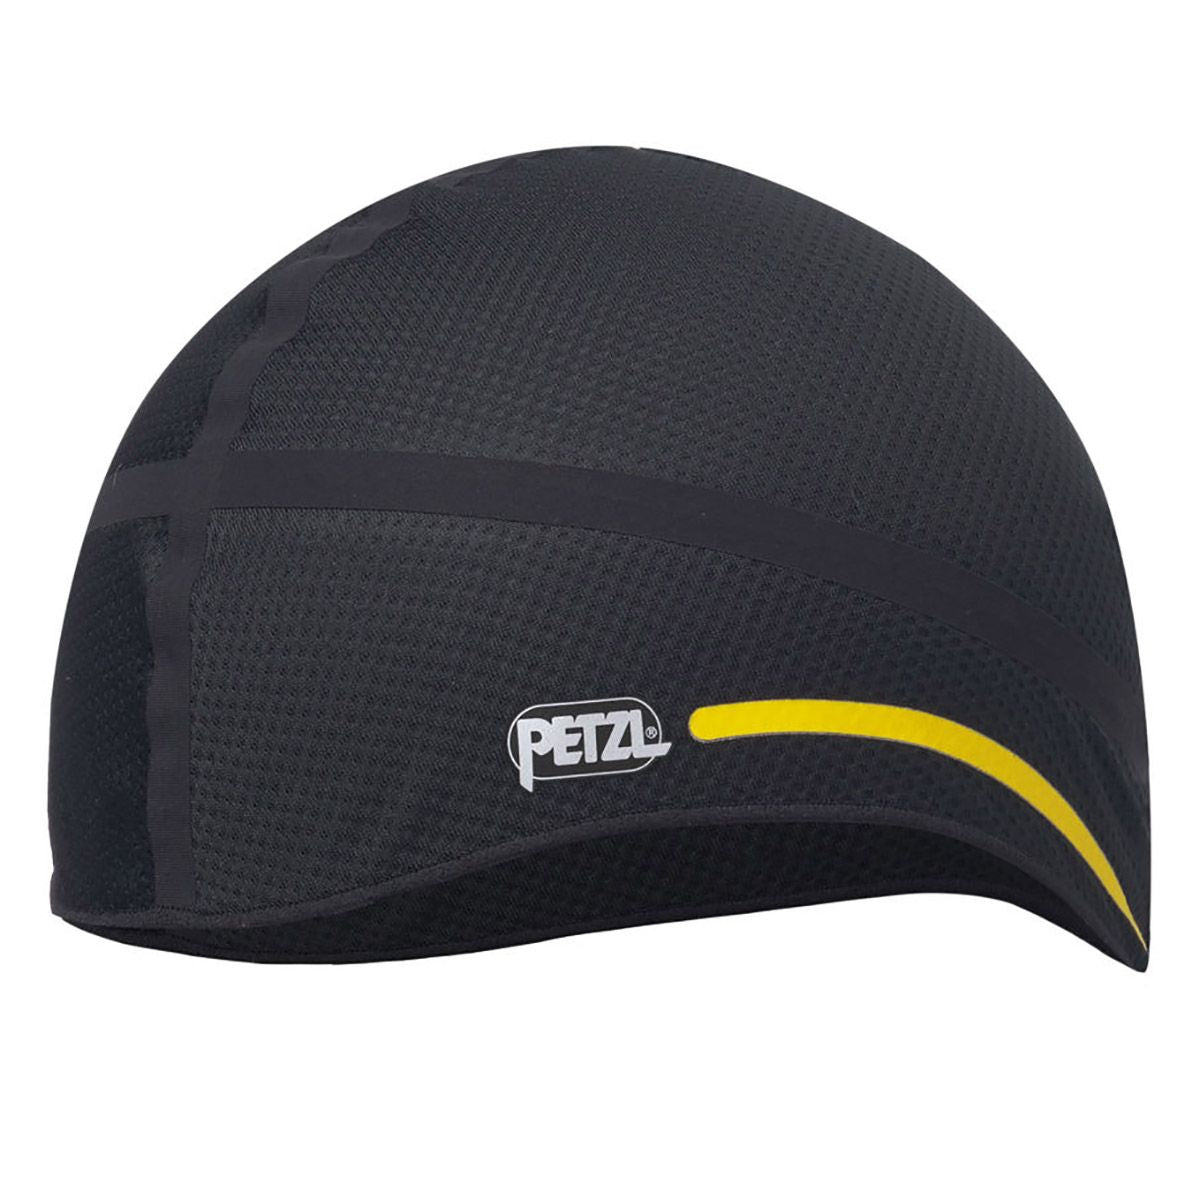 Petzl Headwear - Helmet Liner for warm weather